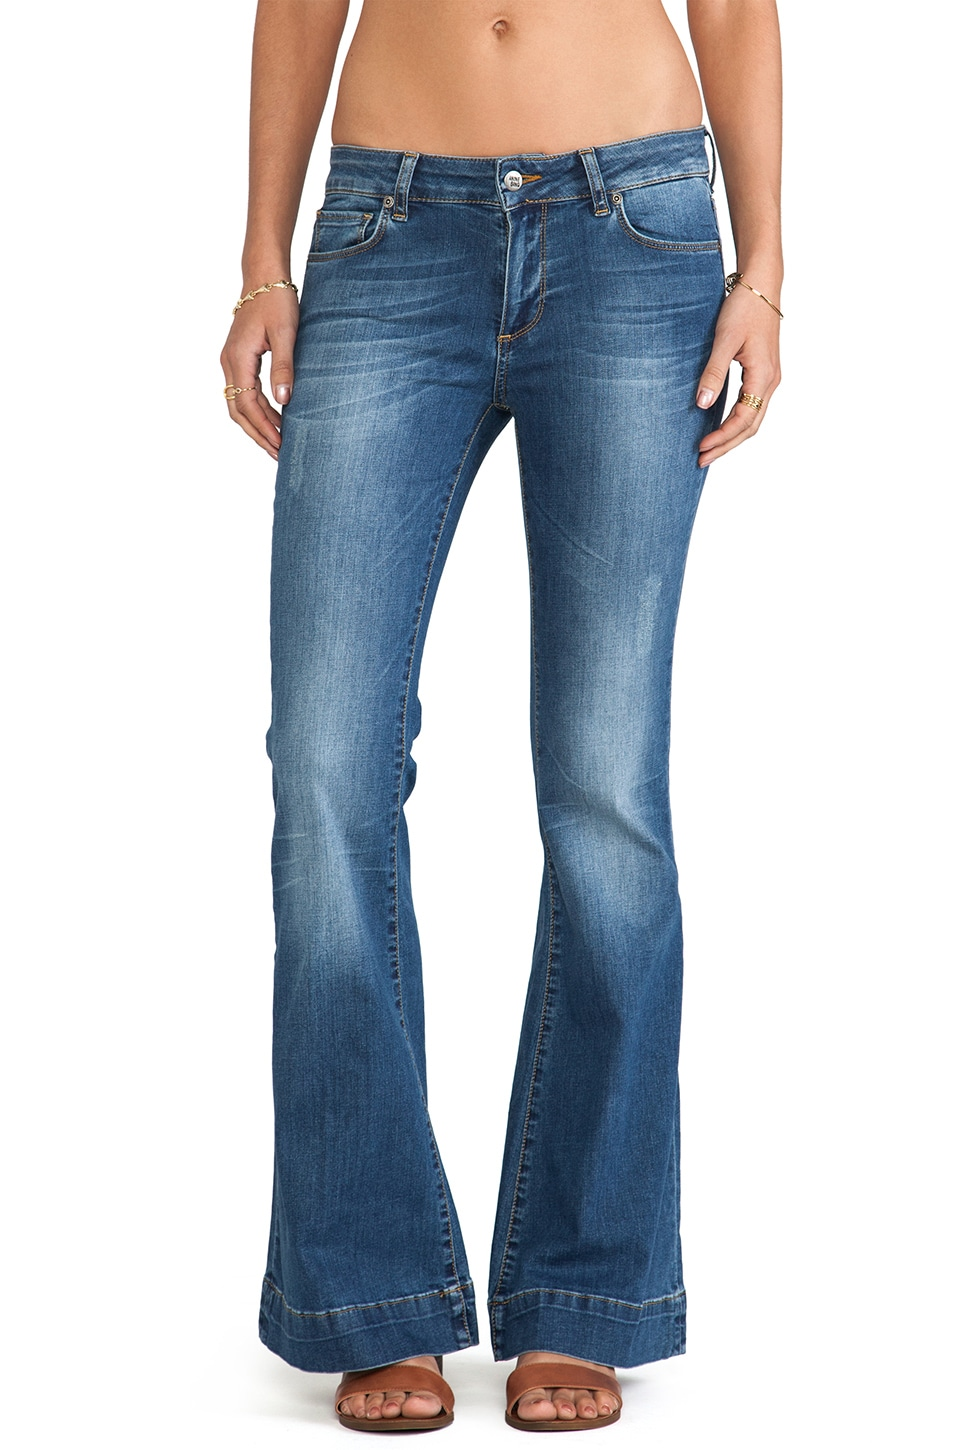 ANINE BING Flare Jean in Vintage Wash